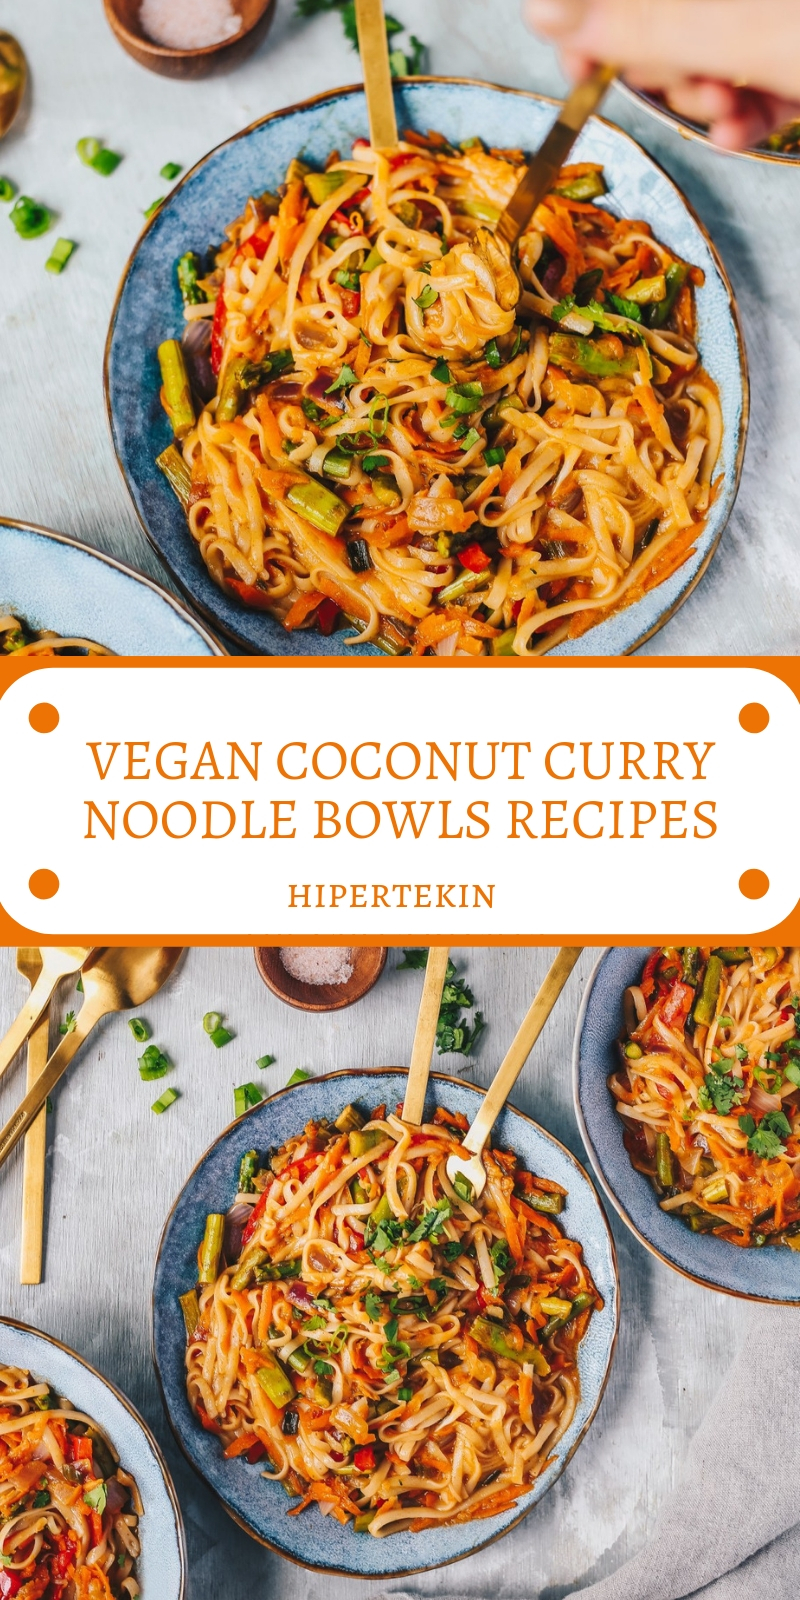 VEGAN COCONUT CURRY NOODLE BOWLS RECIPES